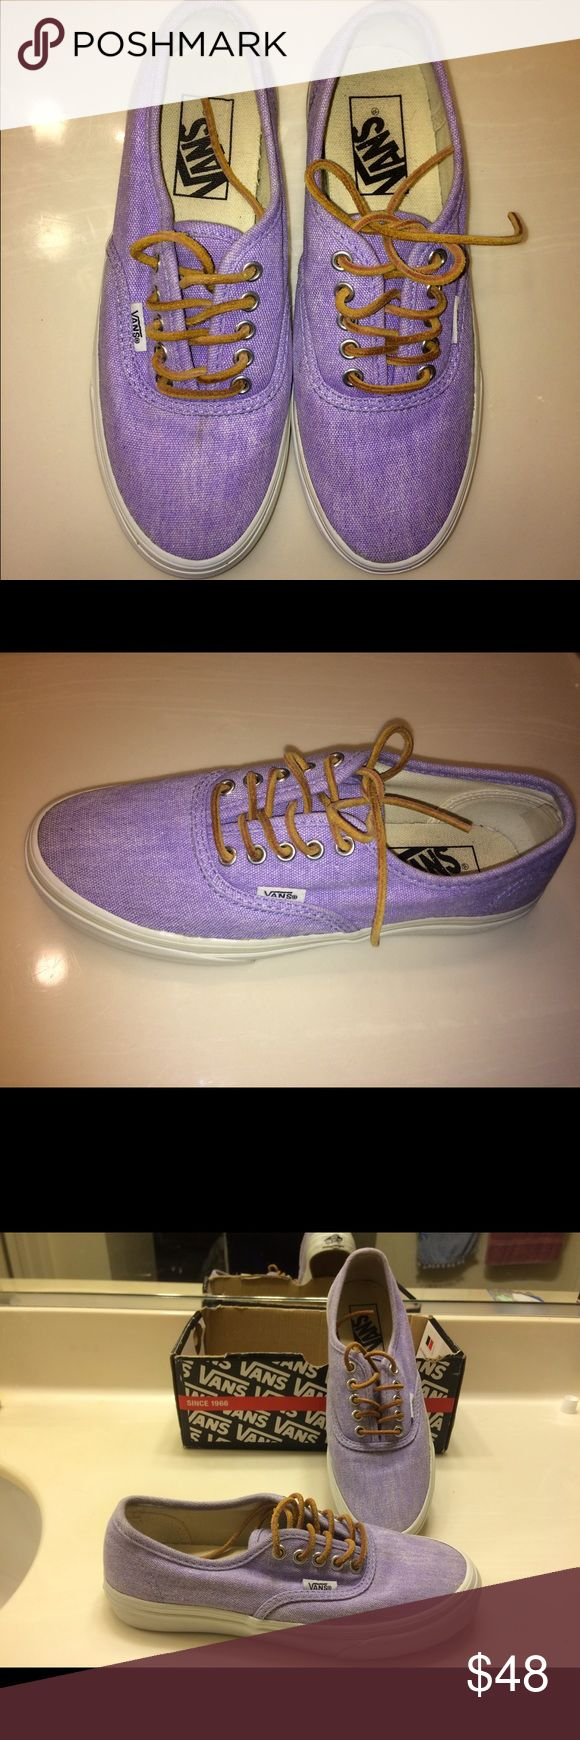 Violet limited edition vans Very cute violet vans! (Authentic slim) worn a few times. Open to offers :) women US 6.0 Men US 4.5 Vans Shoes Sneakers